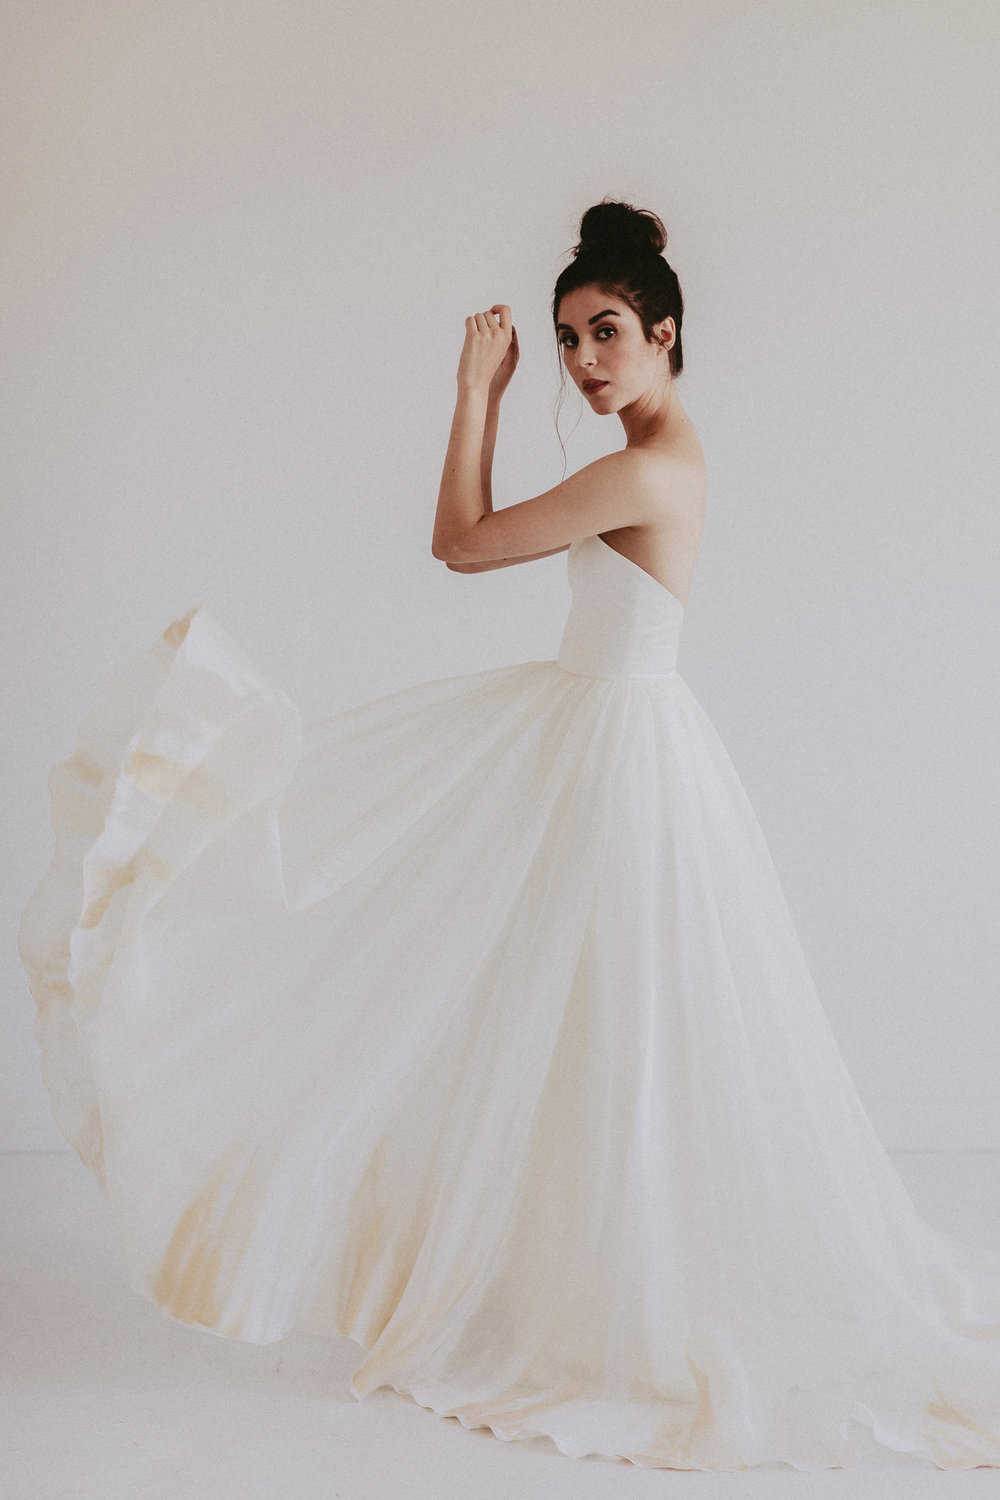 Dolly by Chantel Lauren hand painted organza silk wedding gown